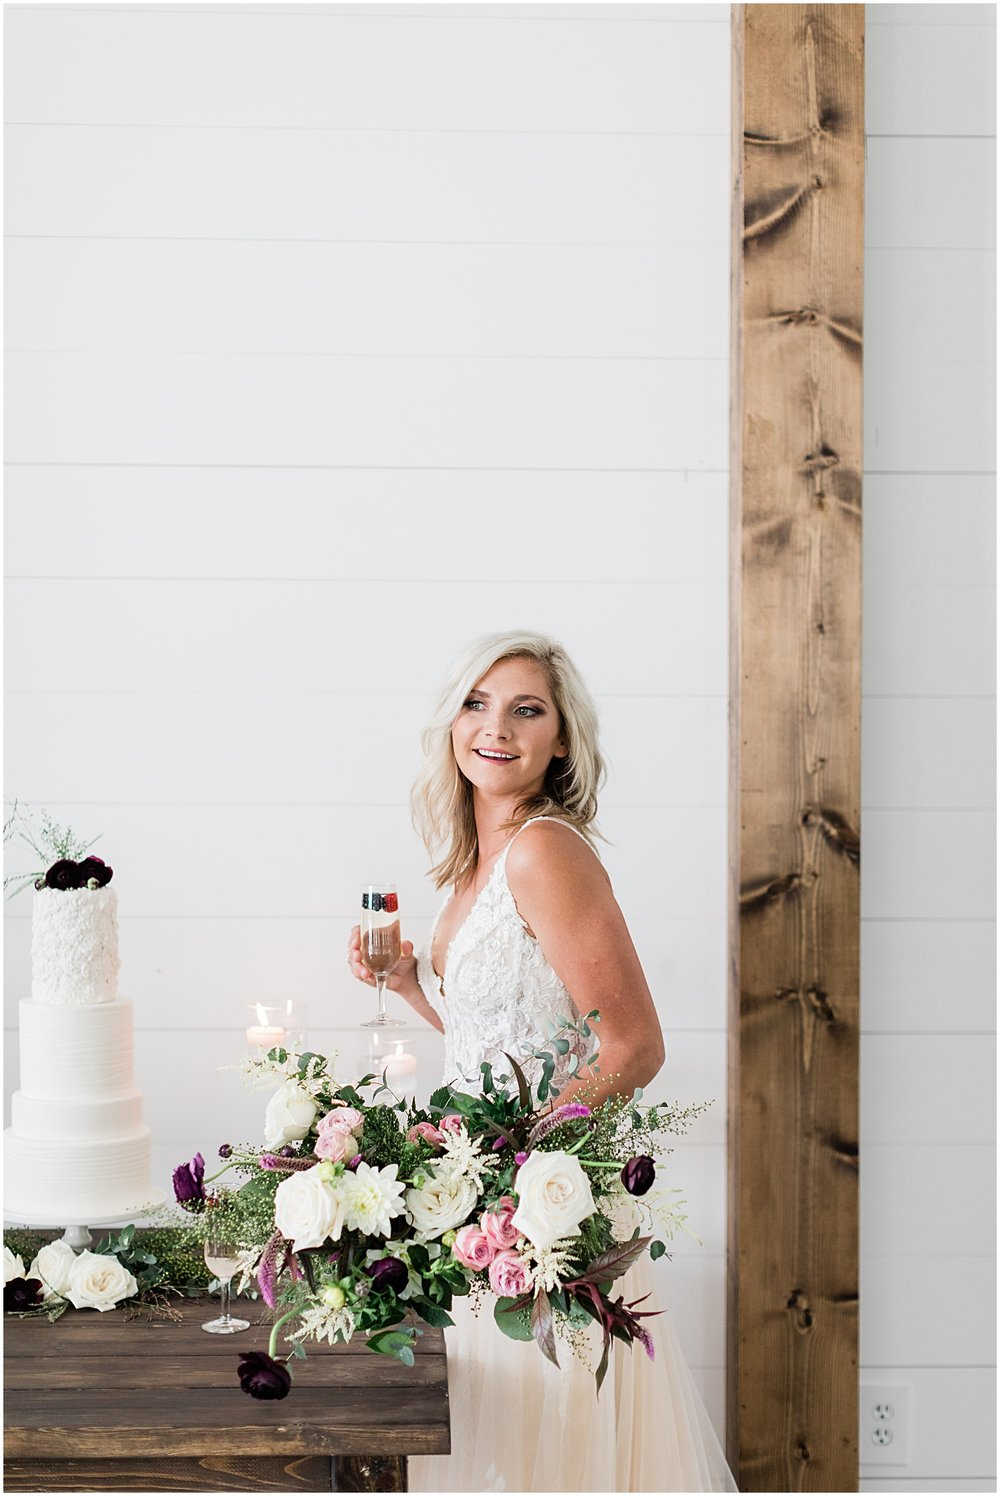 THE FARM AT WOODEND SPRINGS STYLED SHOOT | MARISSA CRIBBS PHOTOGRAPHY_6048.jpg